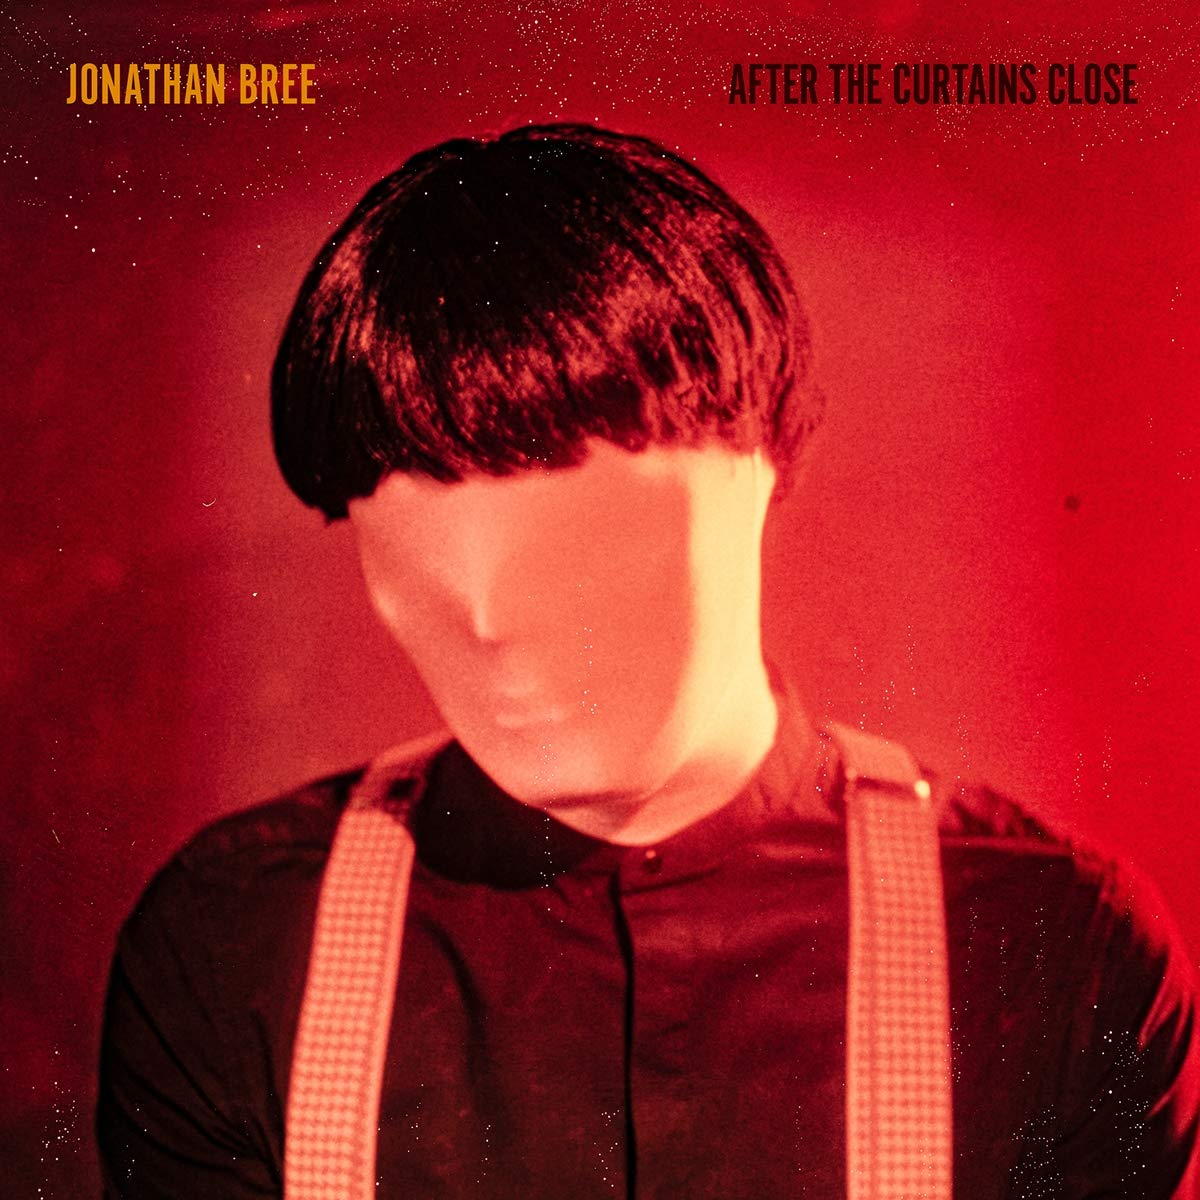 After The Curtains Close: Jonathan Bree, Jonathan Bree: Amazon.fr ...